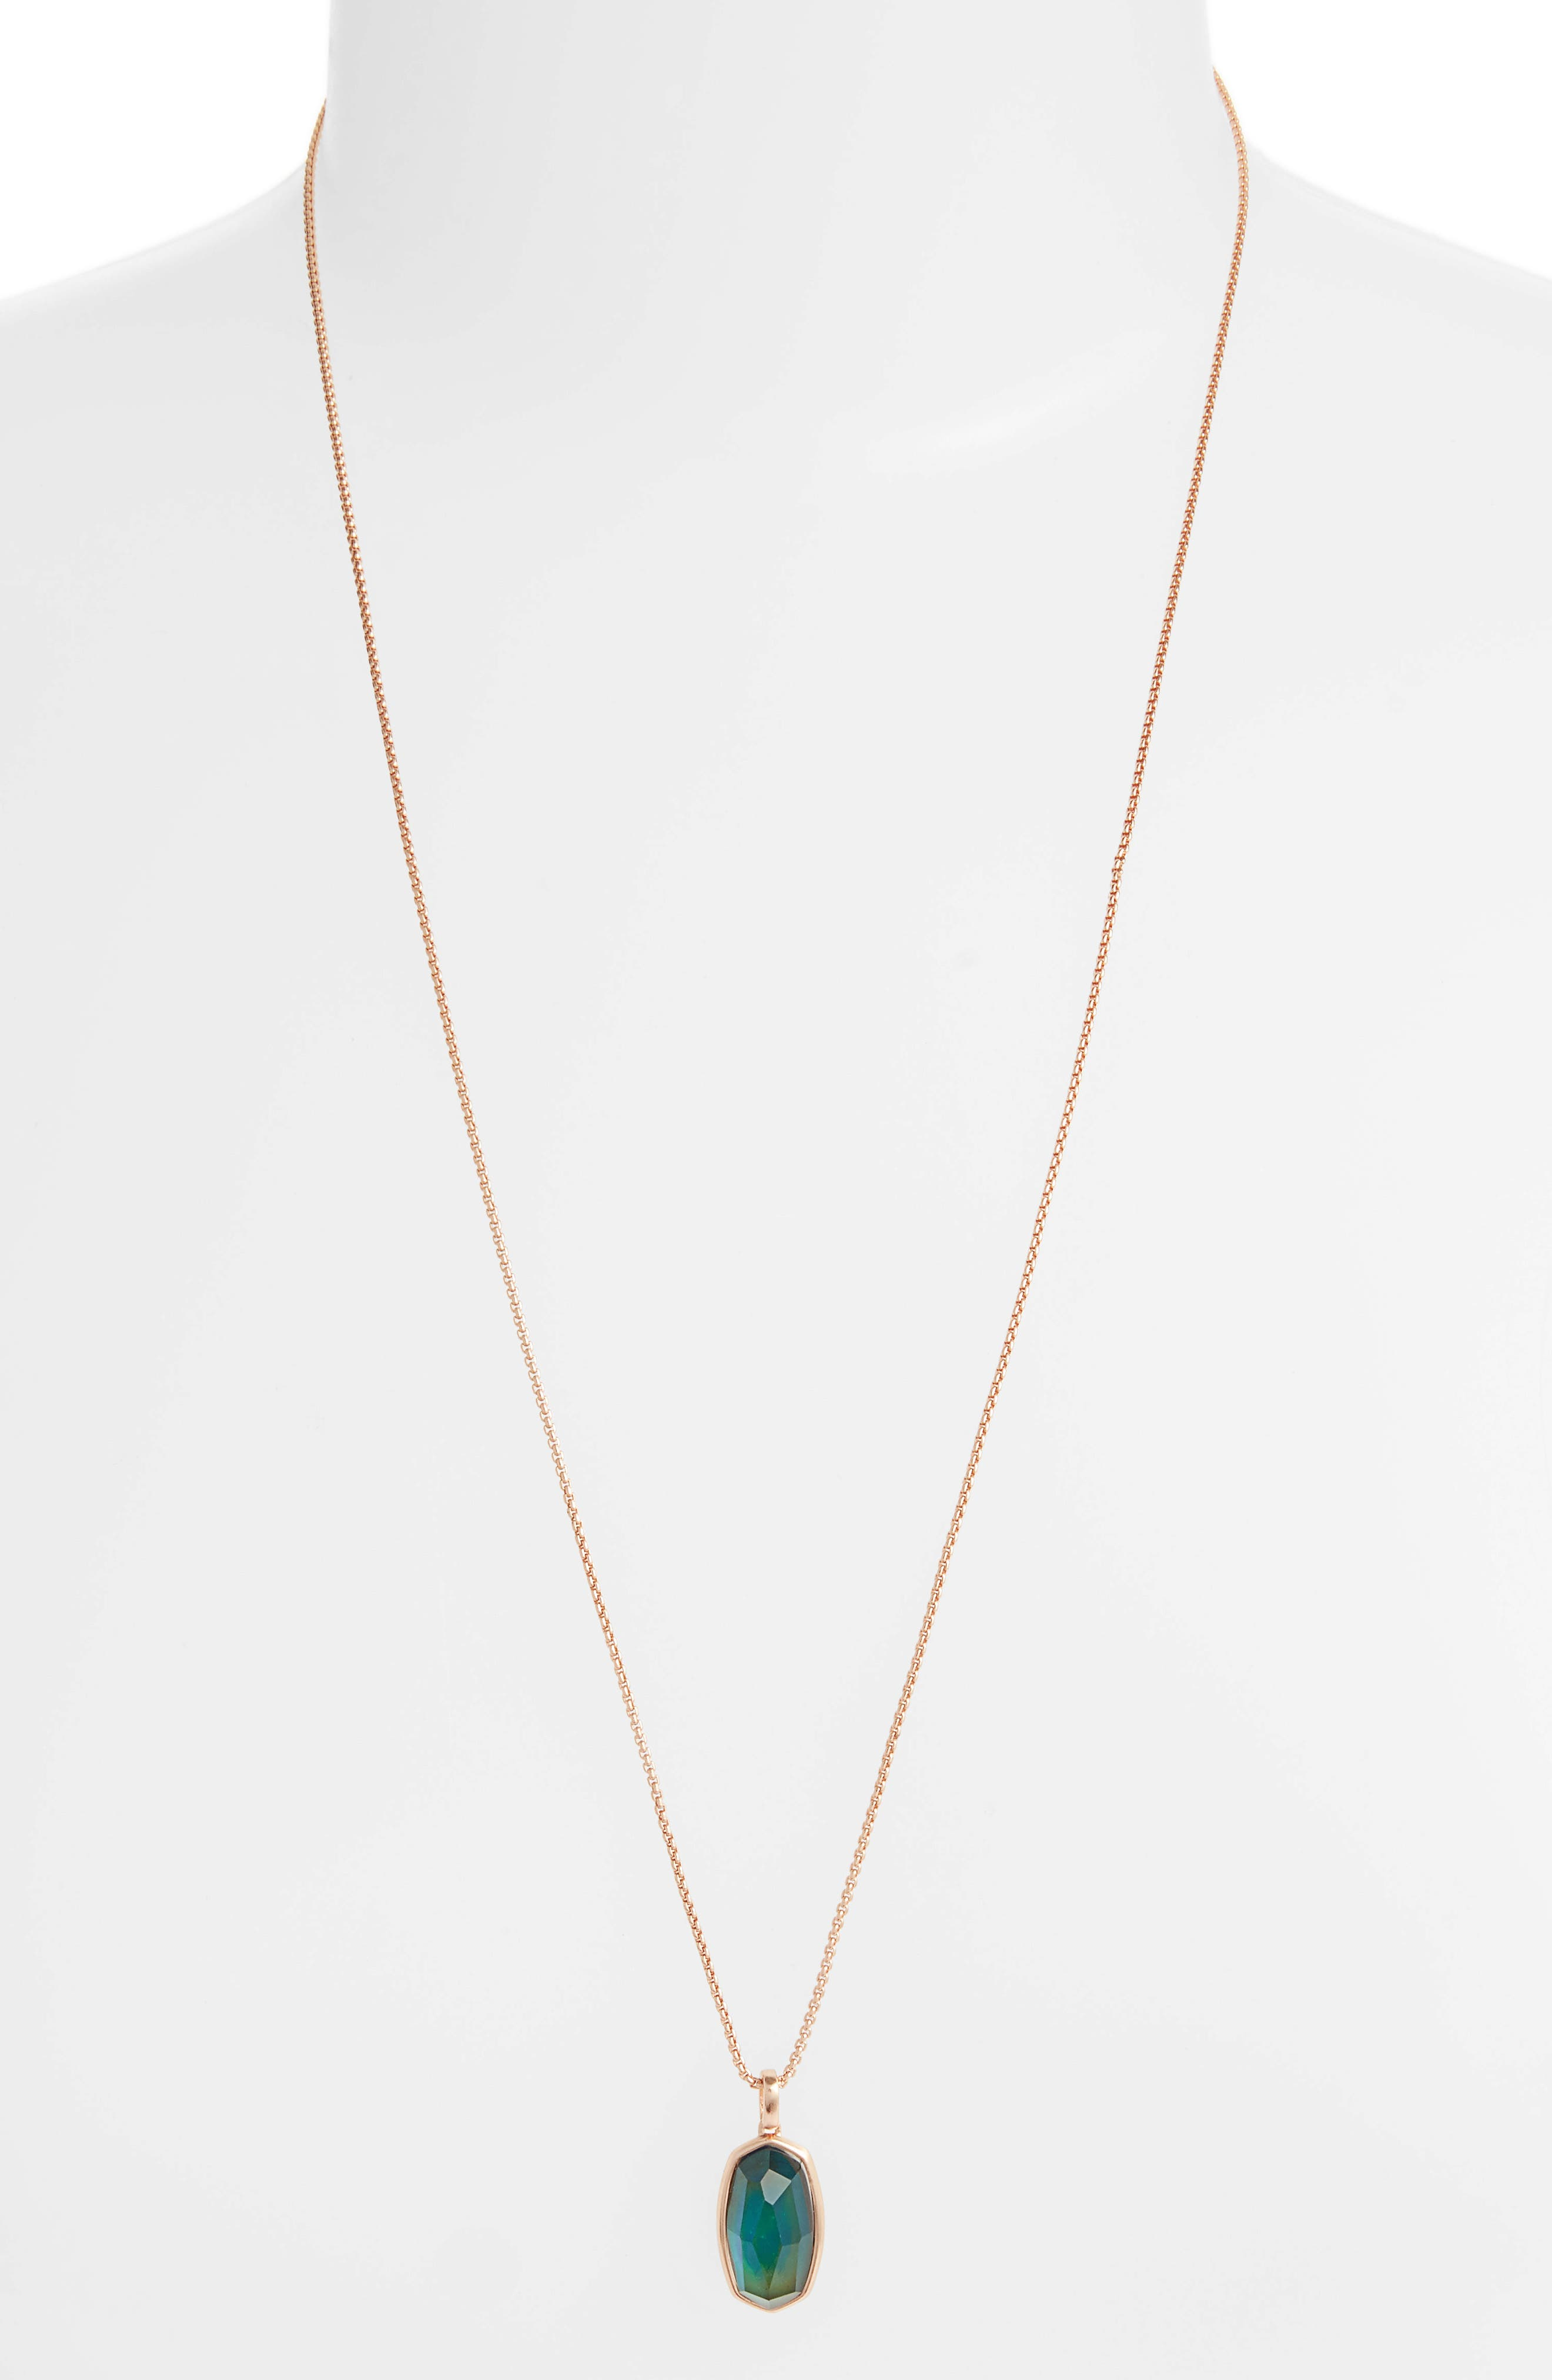 Mood Stone Pendant Necklace,                             Main thumbnail 1, color,                             MOOD STONE/ ROSE GOLD